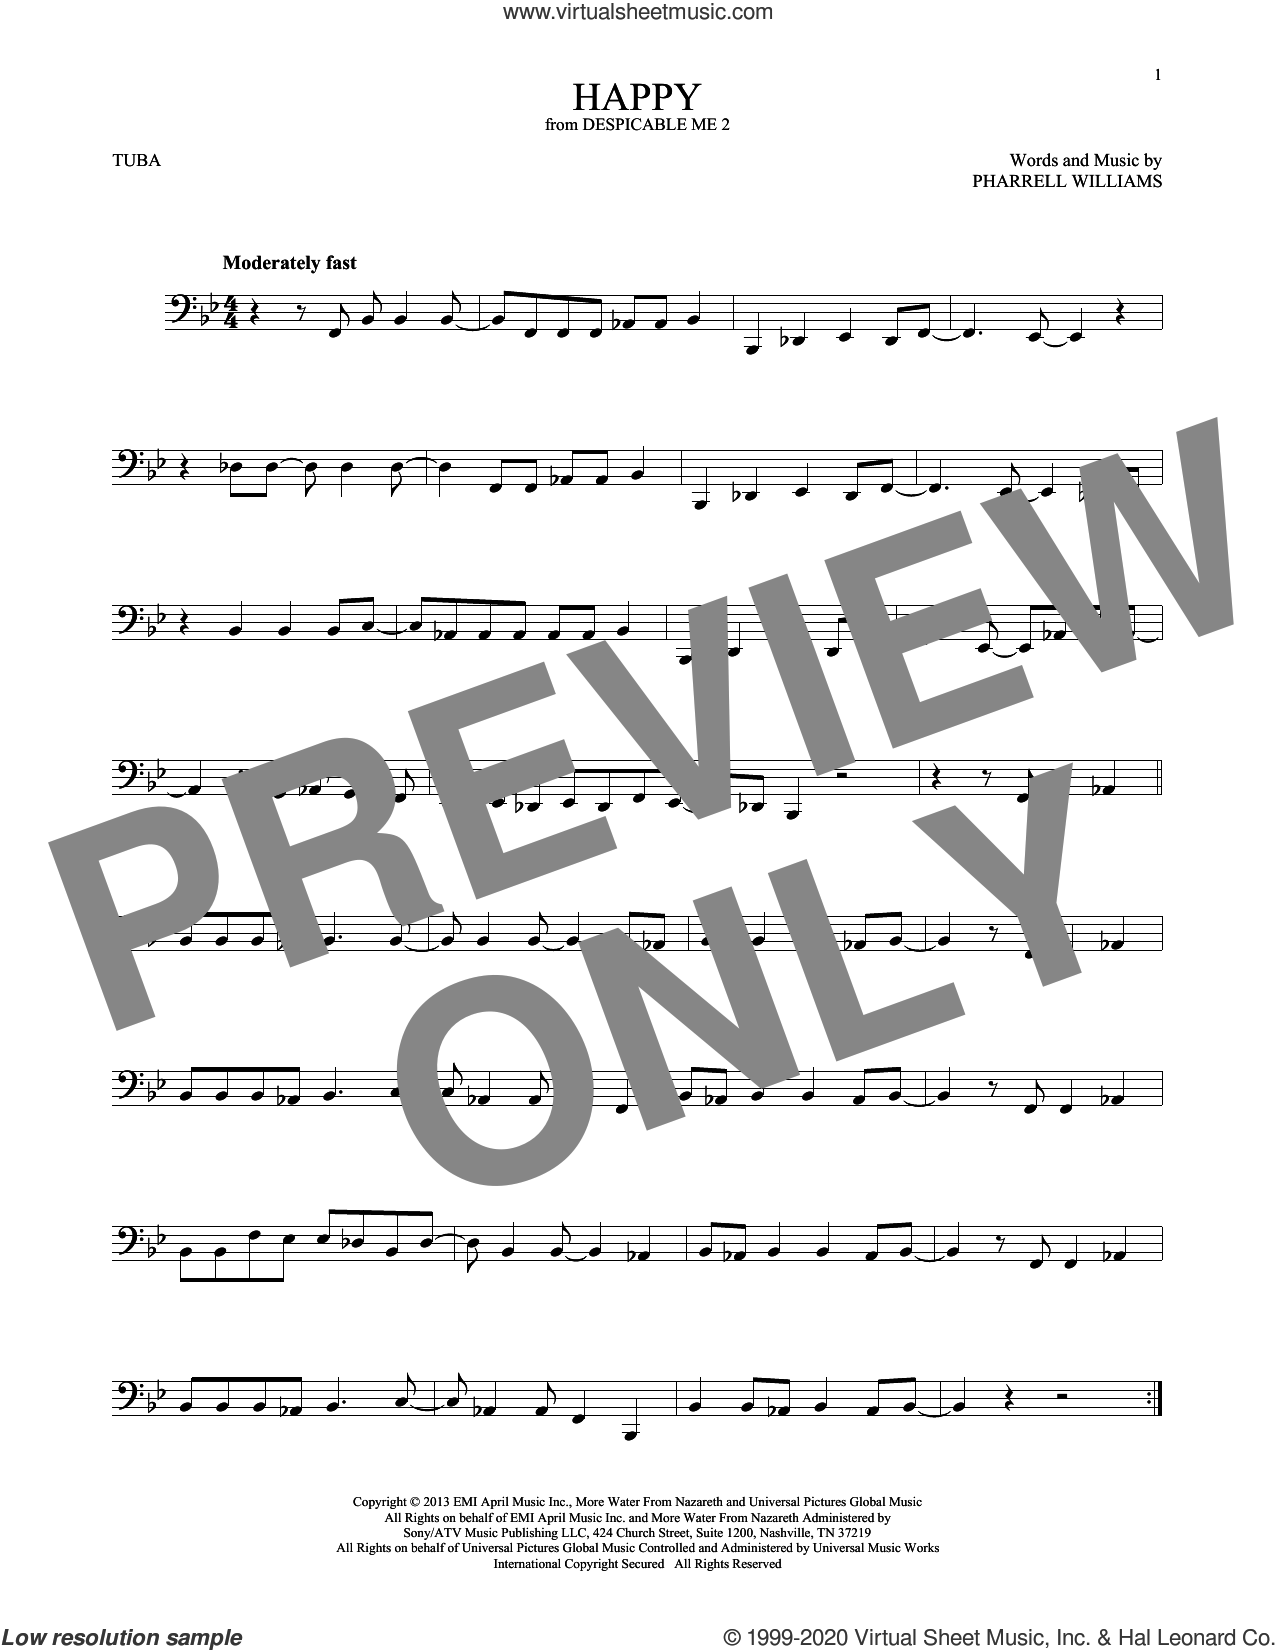 Happy (from Despicable Me 2) sheet music for Tuba Solo (tuba) by Pharrell Williams, intermediate skill level